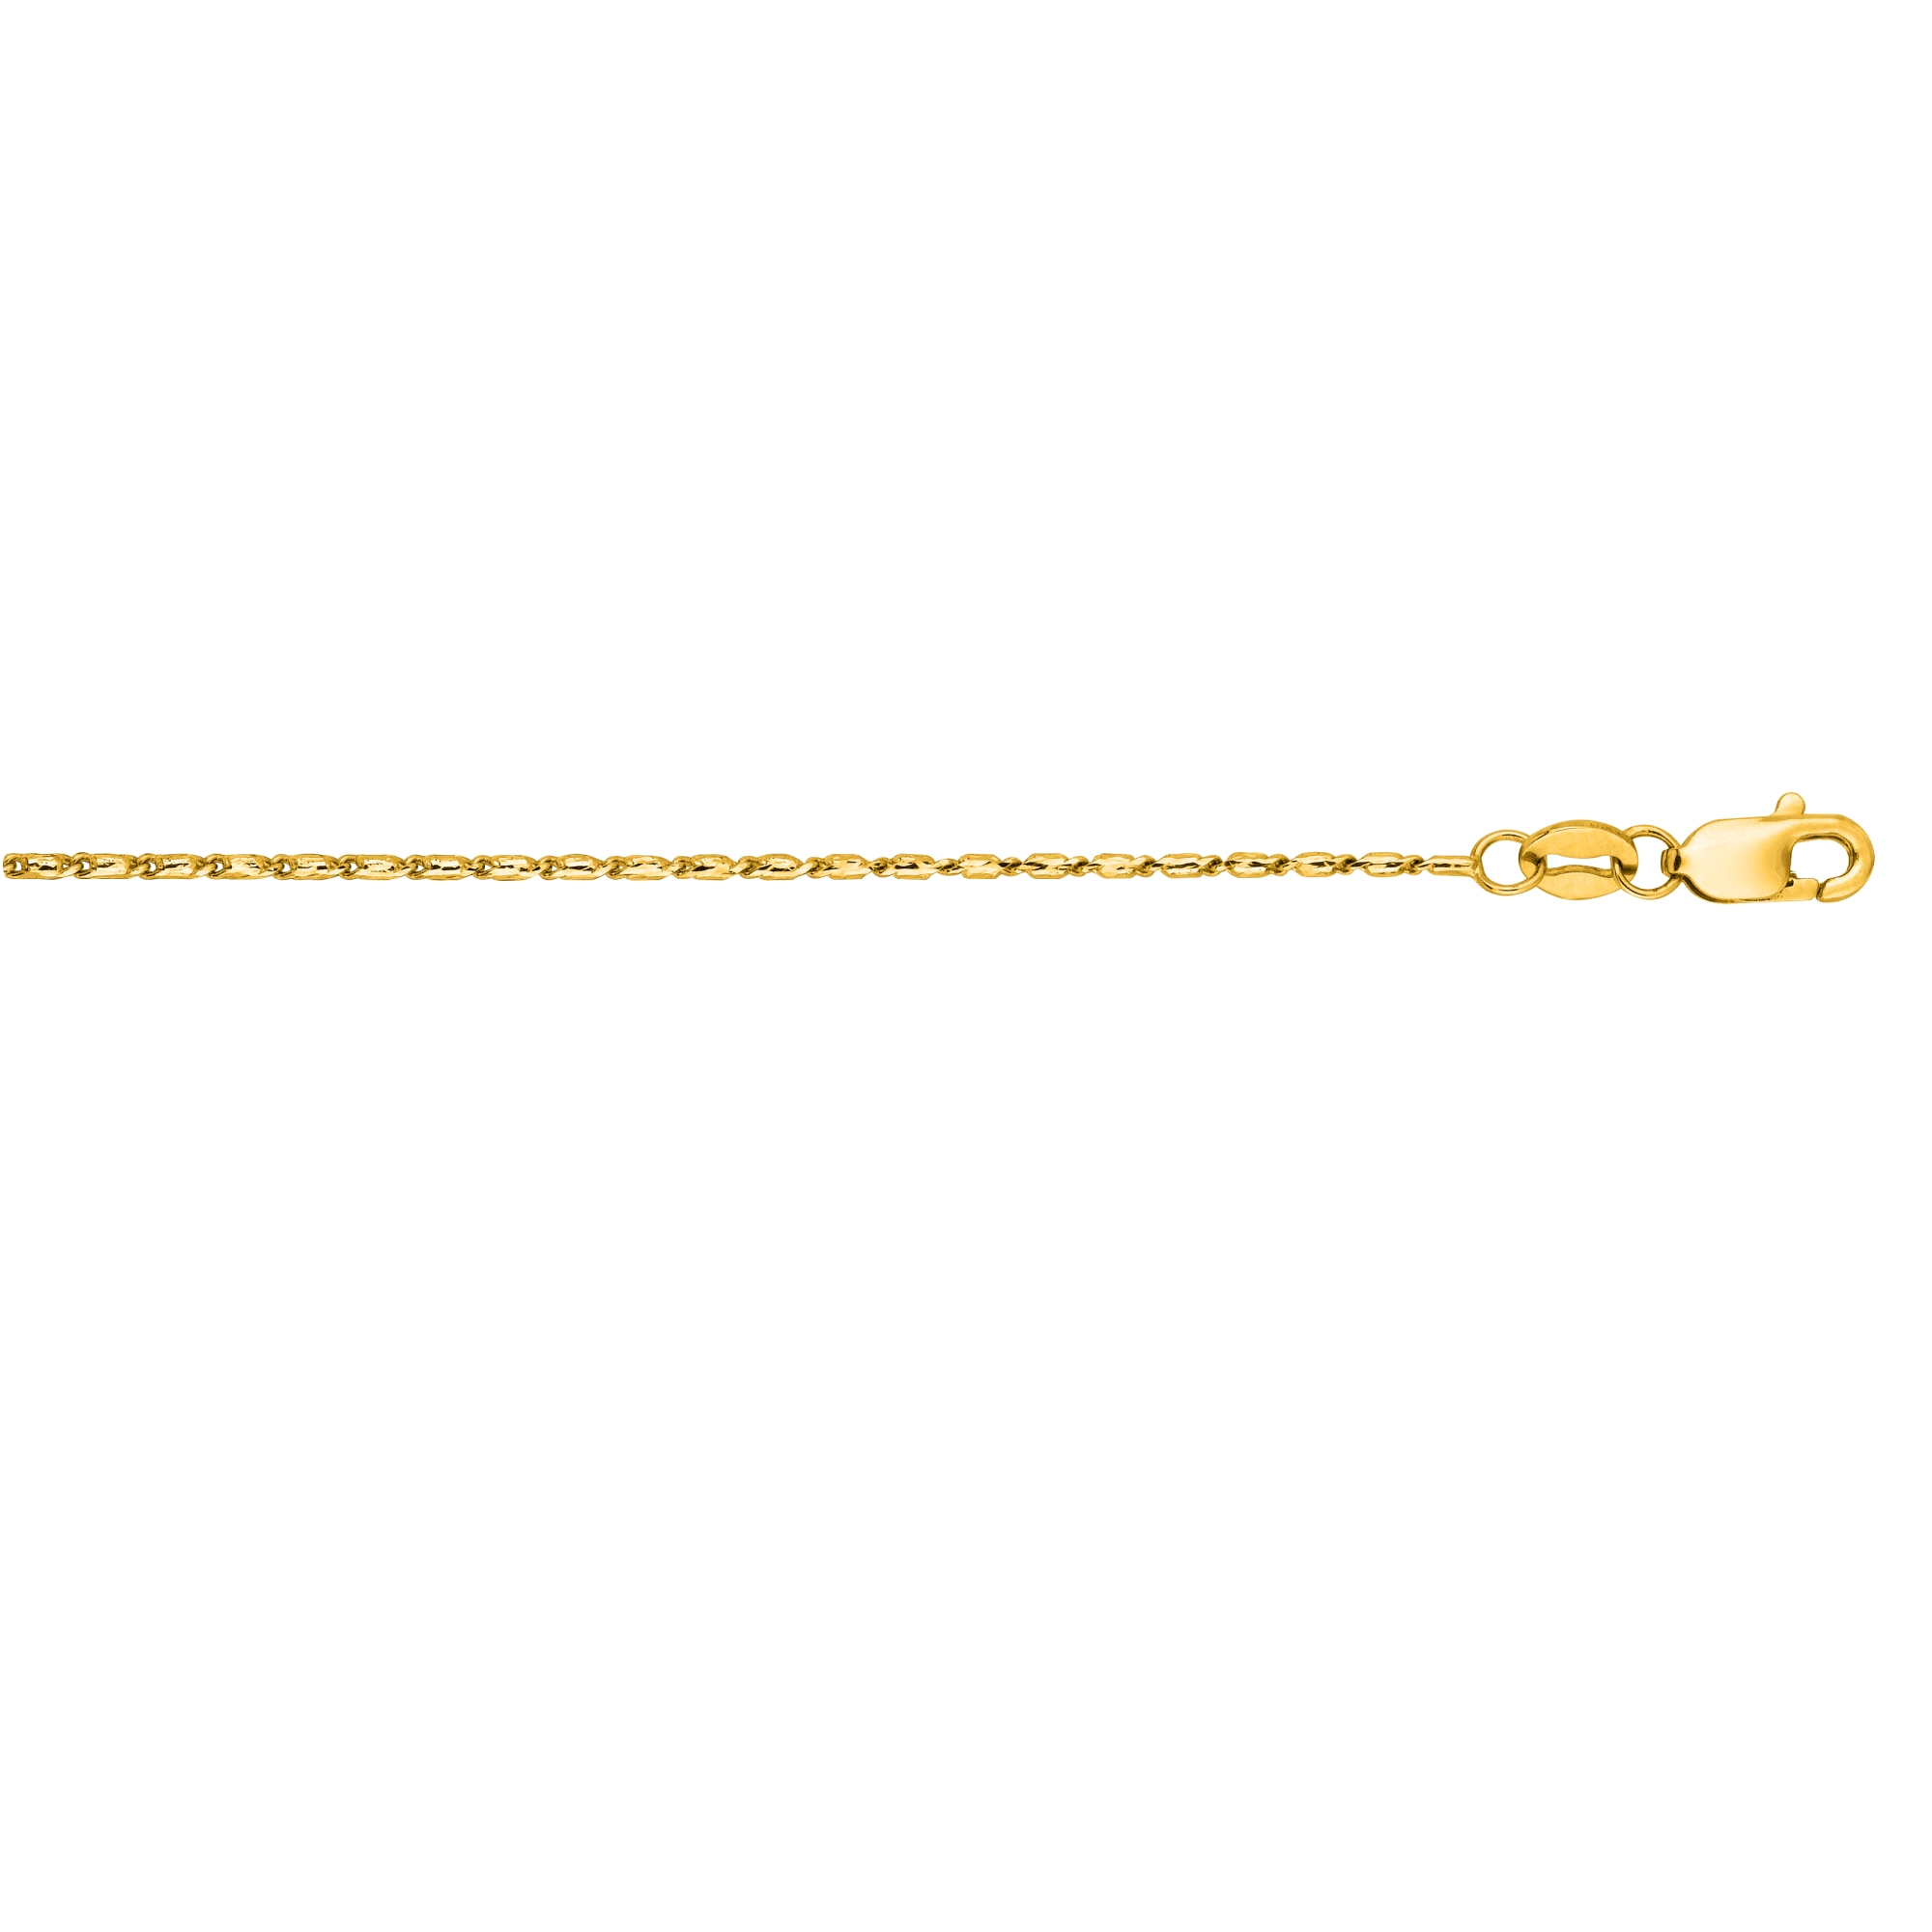 LUXURMAN Solid 14k Gold Lumina Chain For Women 0.9mm Wide Yellow Image